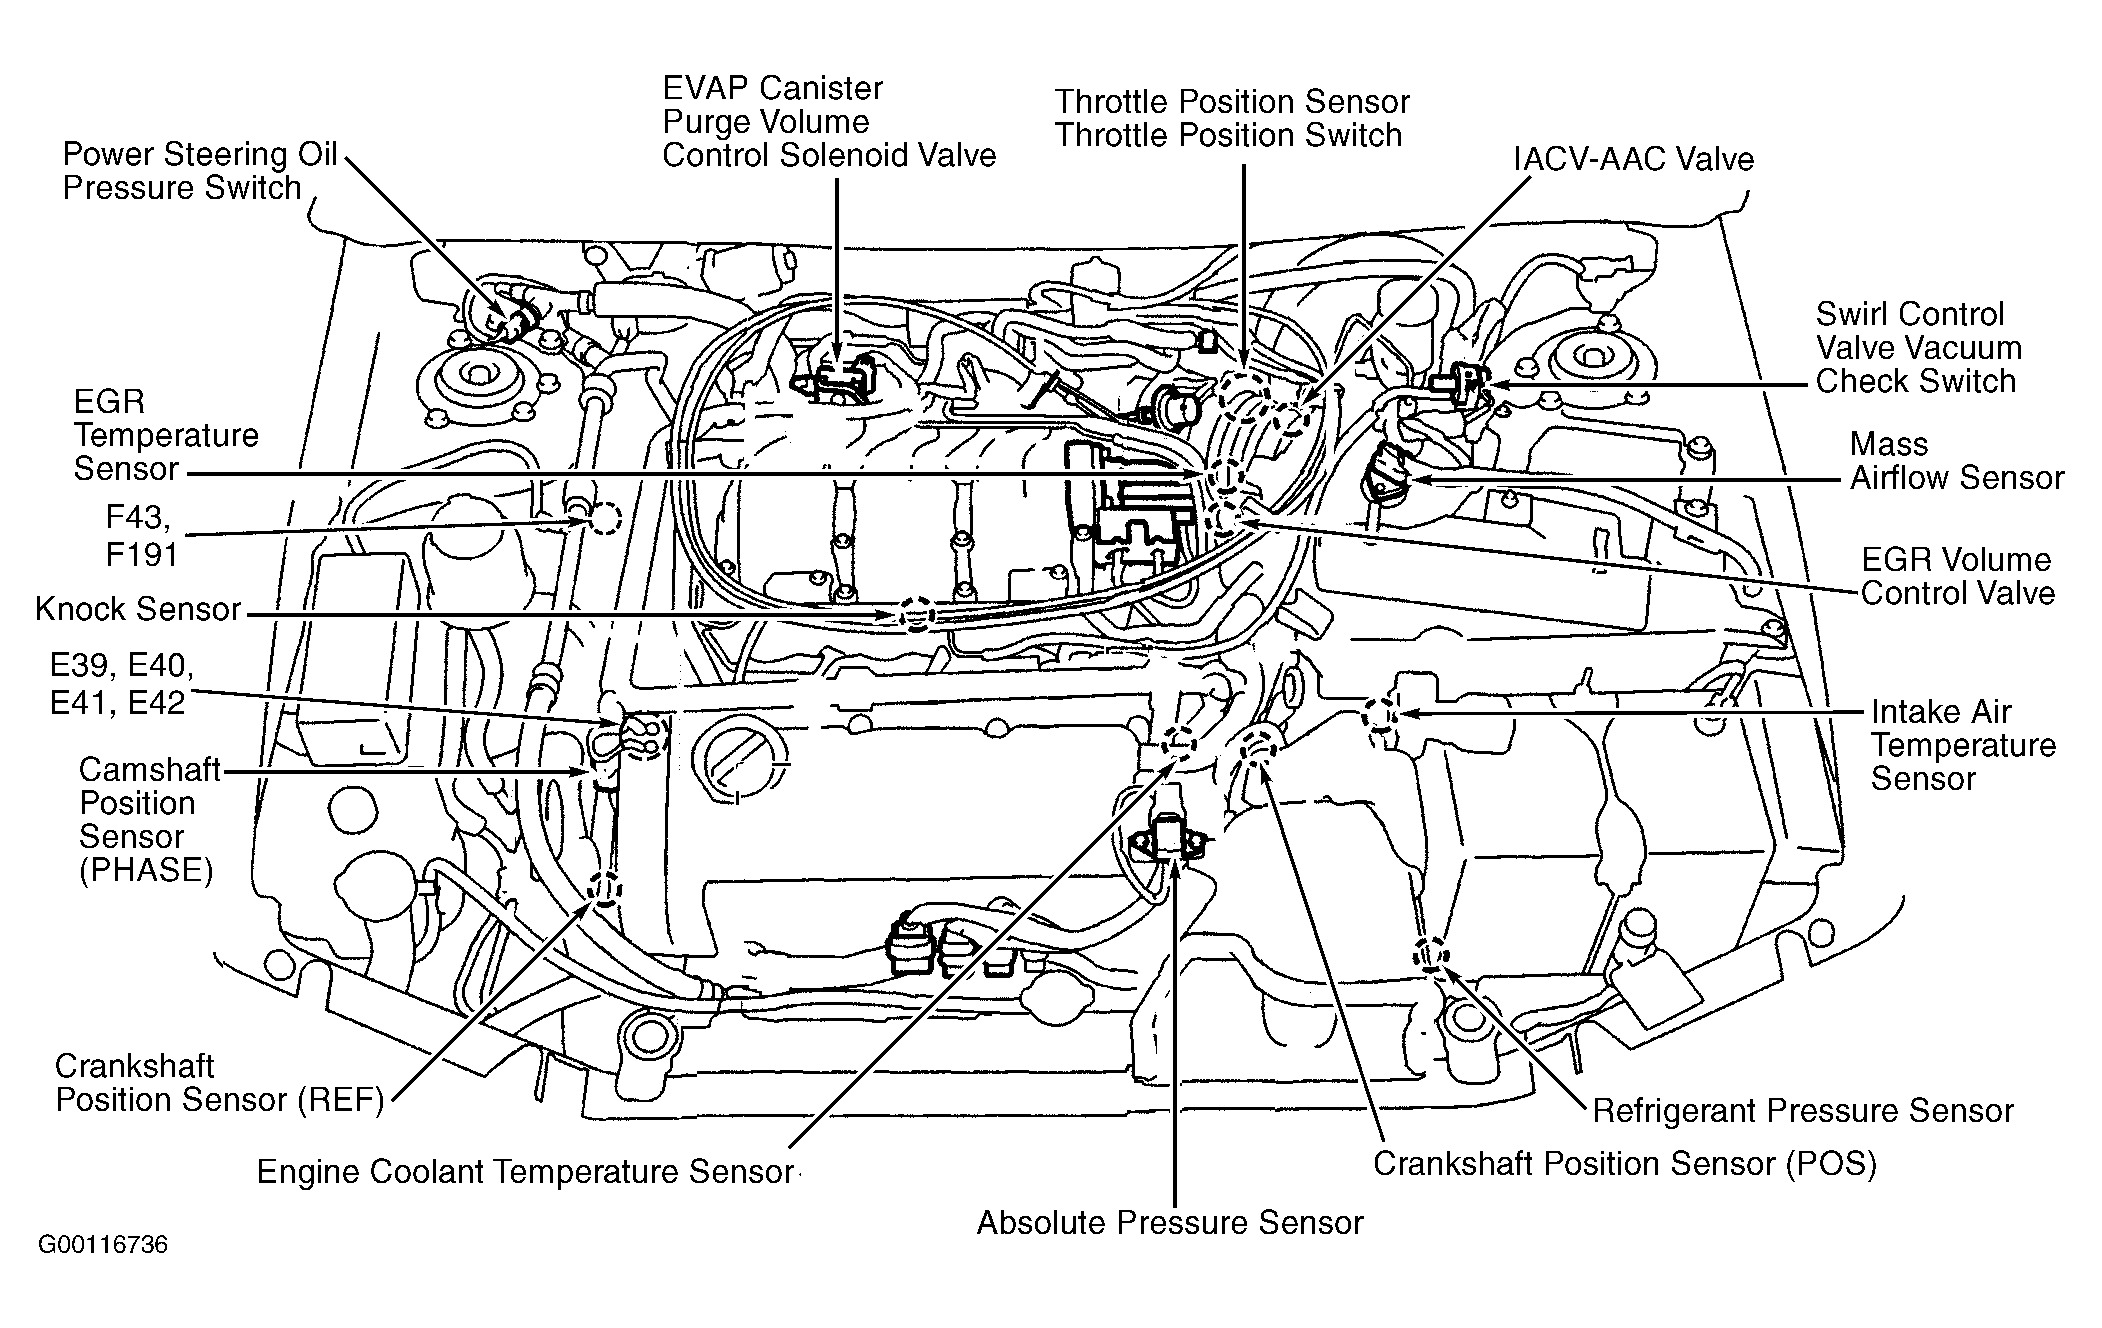 1997 chrysler concorde engine diagram trusted wiring diagrams u2022 rh sivamuni com